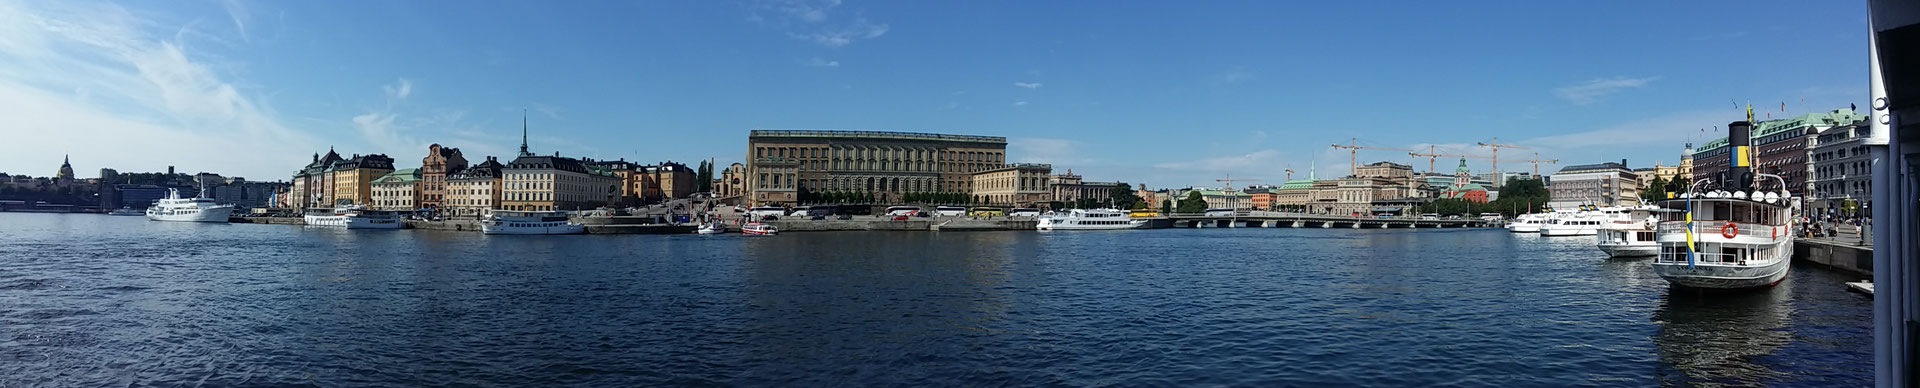 The Royal Castle and its surroundings seen from a boat